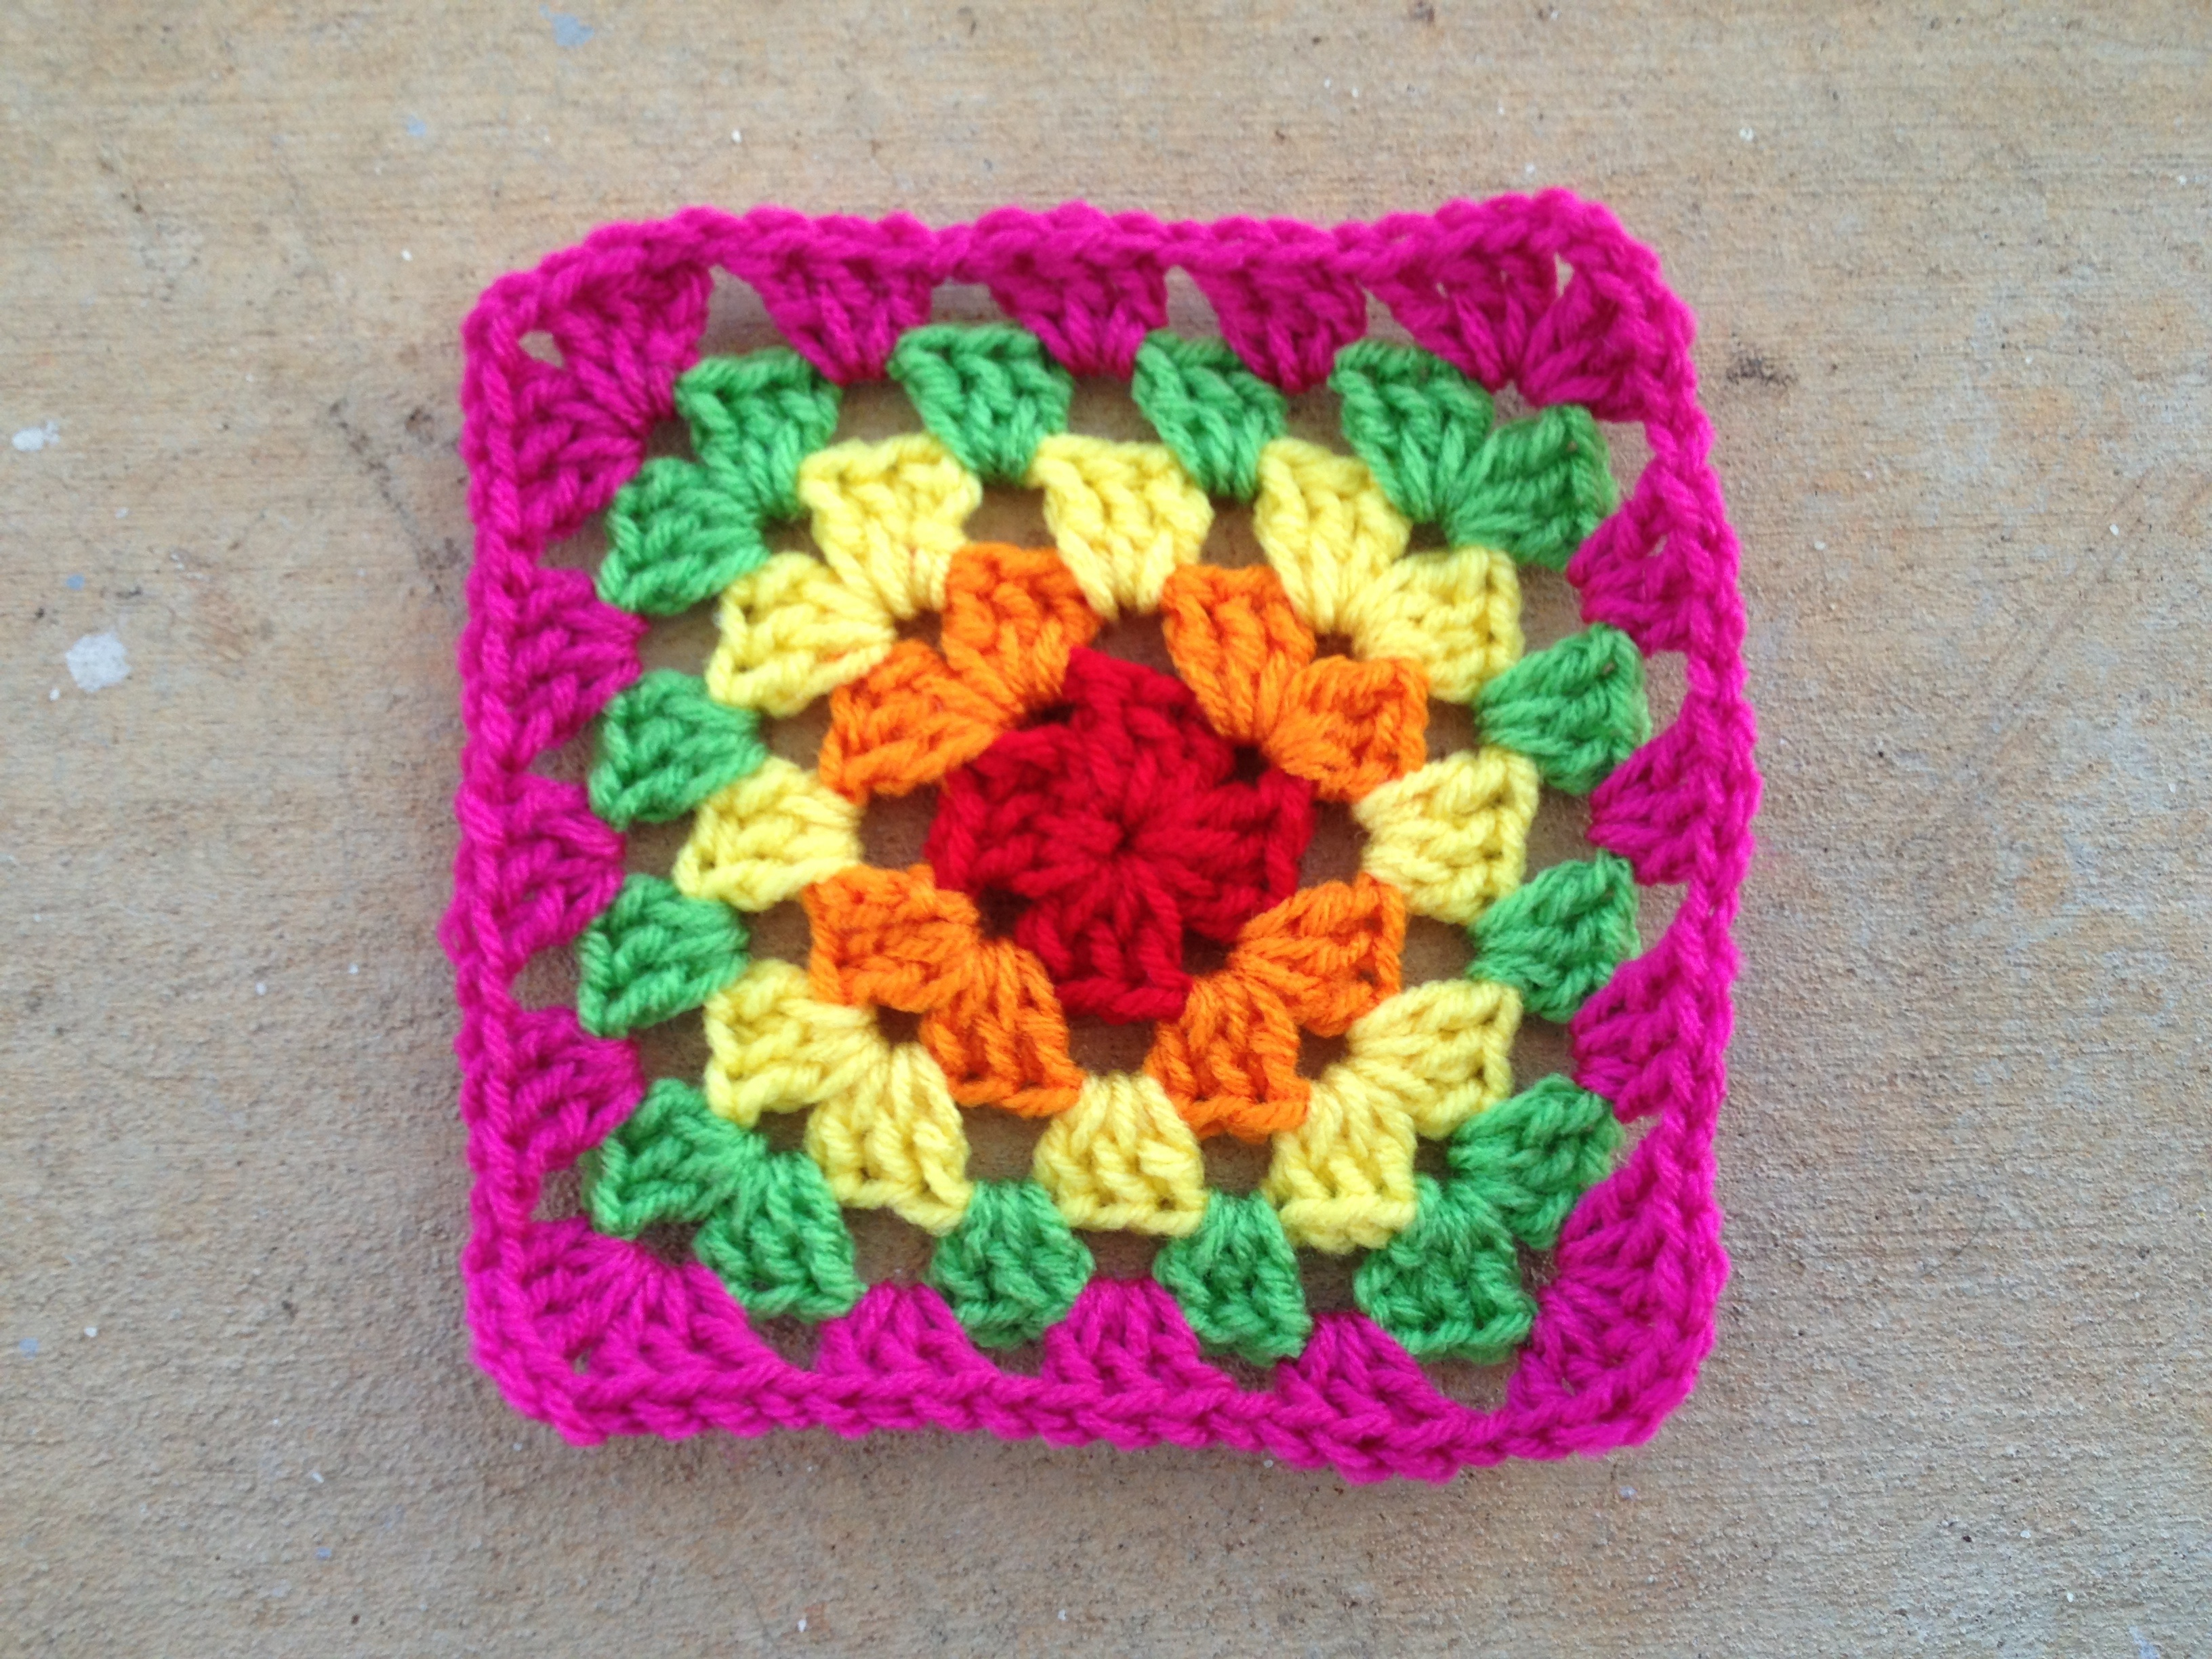 Free Crochet Patterns 6 Inch Squares : Crochet squares on Pinterest Crochet Granny Squares ...